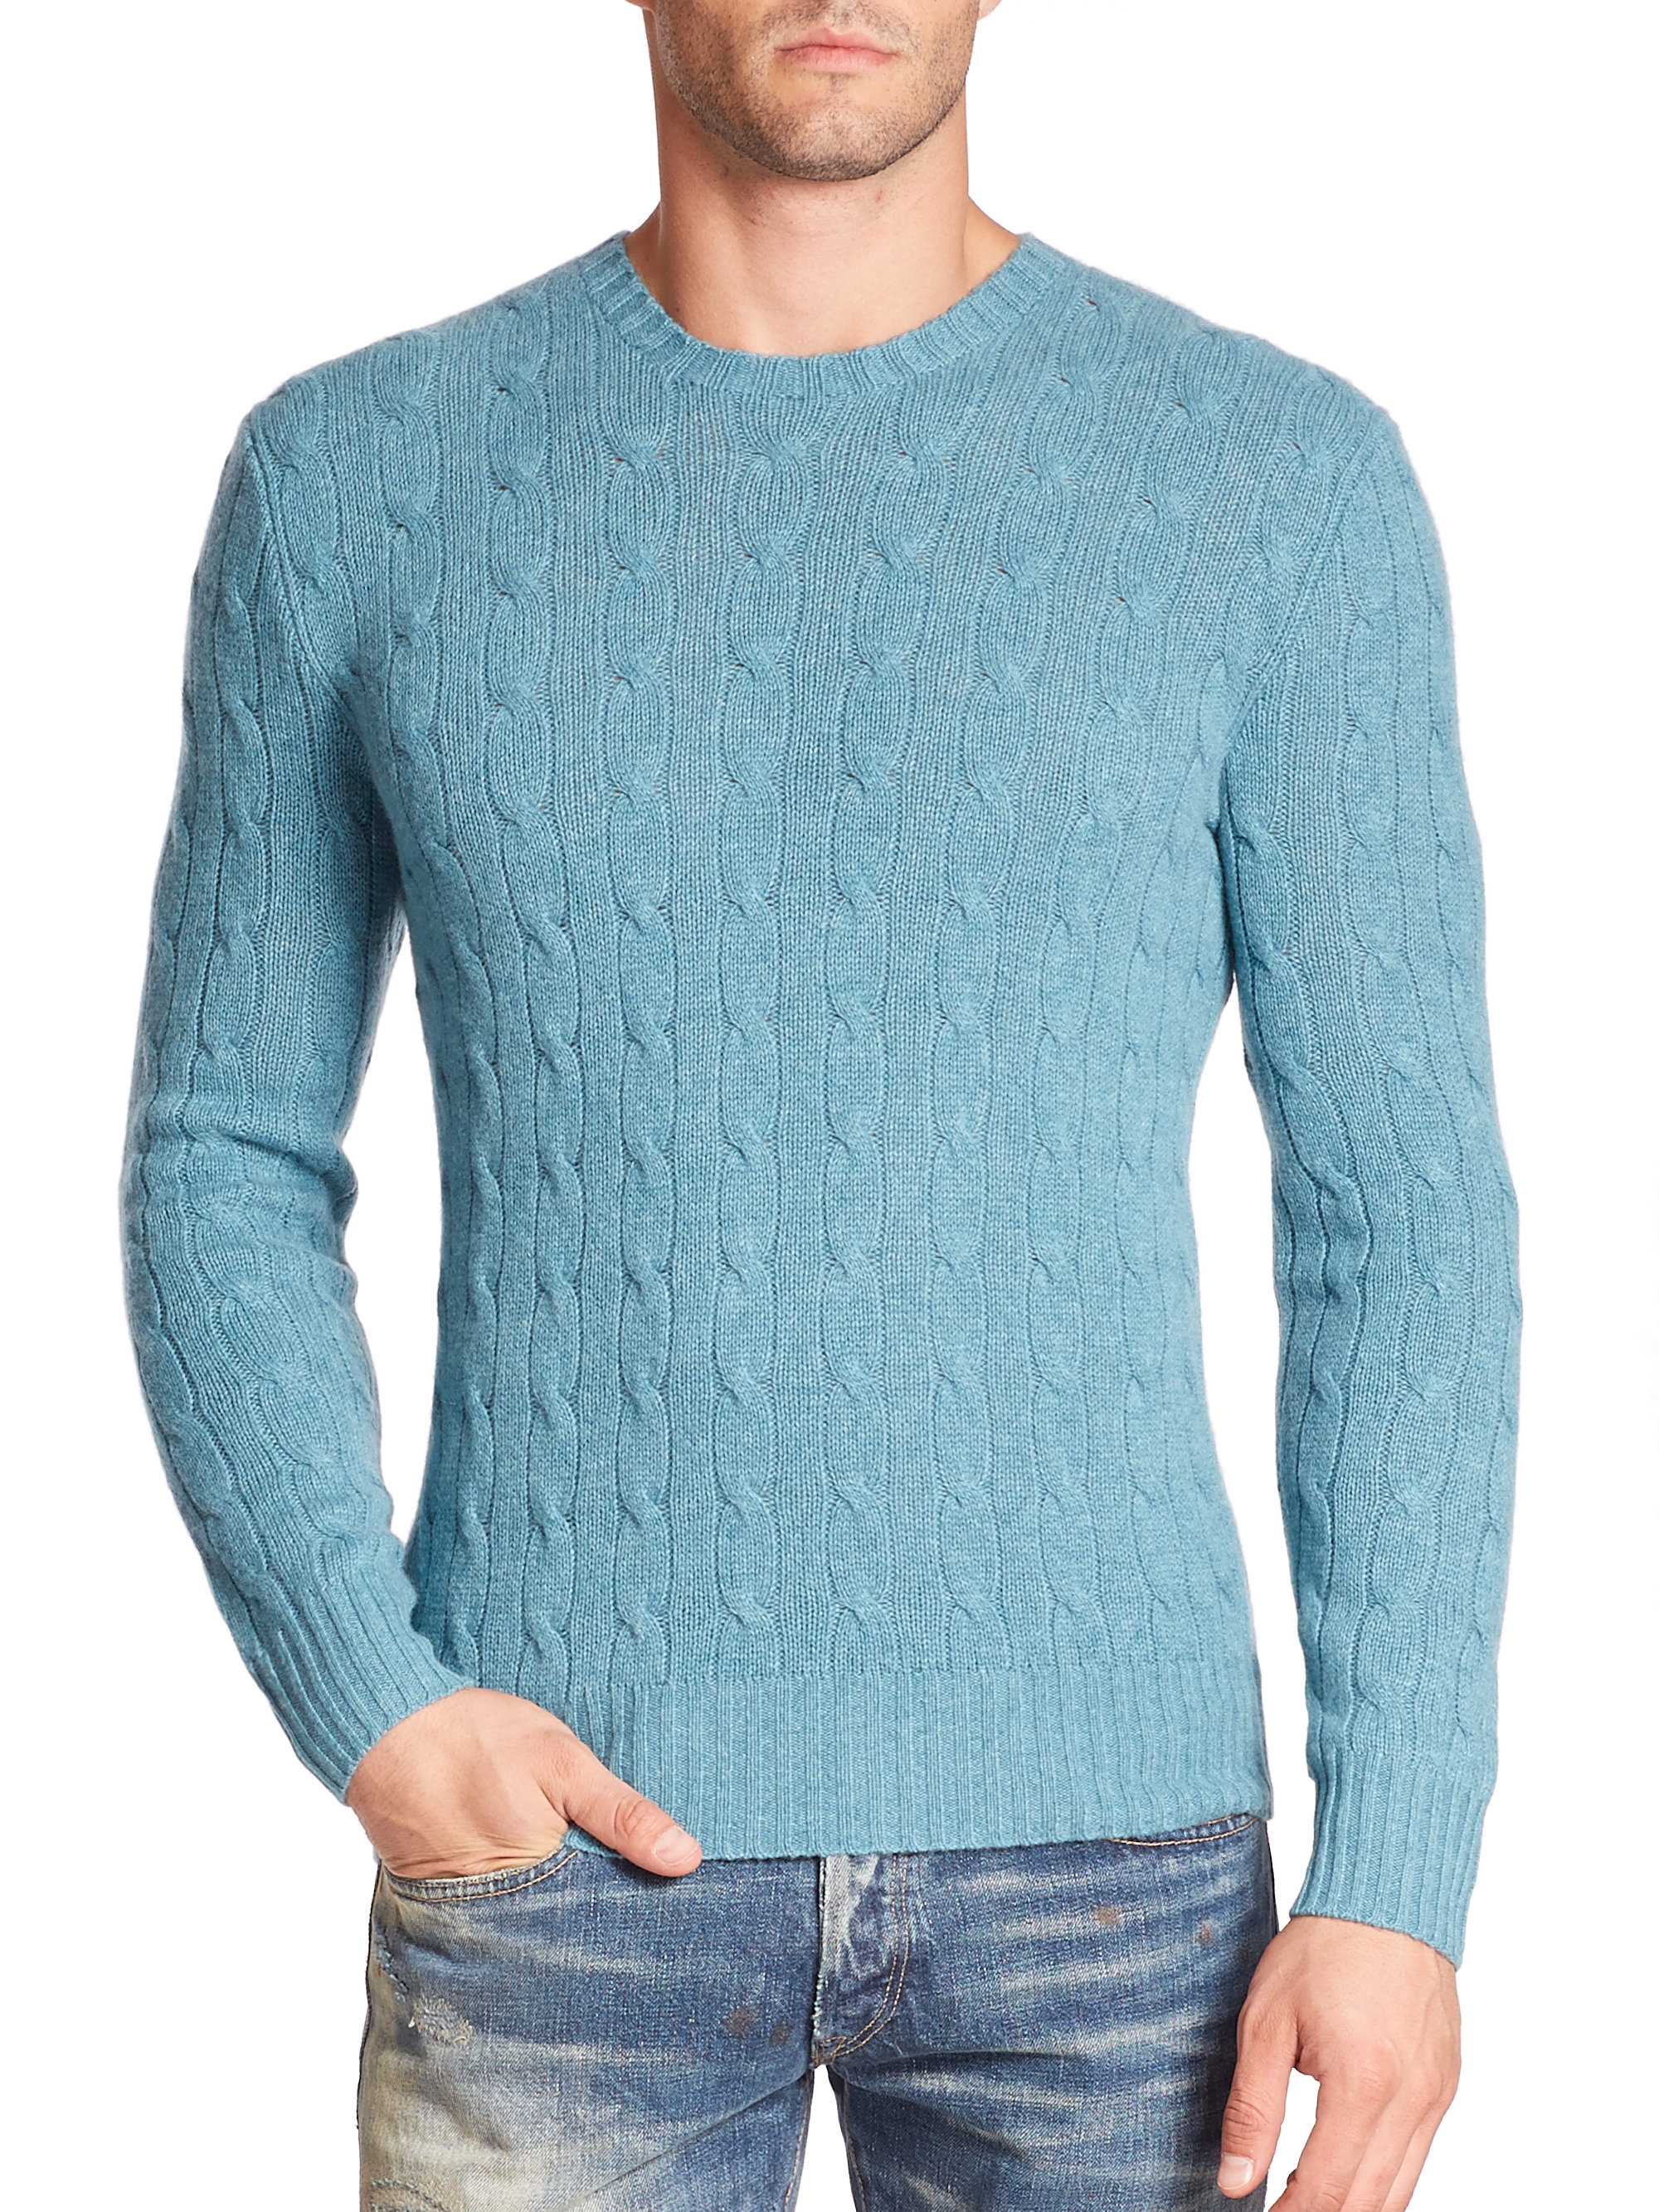 Lyst Polo Ralph Lauren Cable Knit Cashmere Sweater In Blue For Men